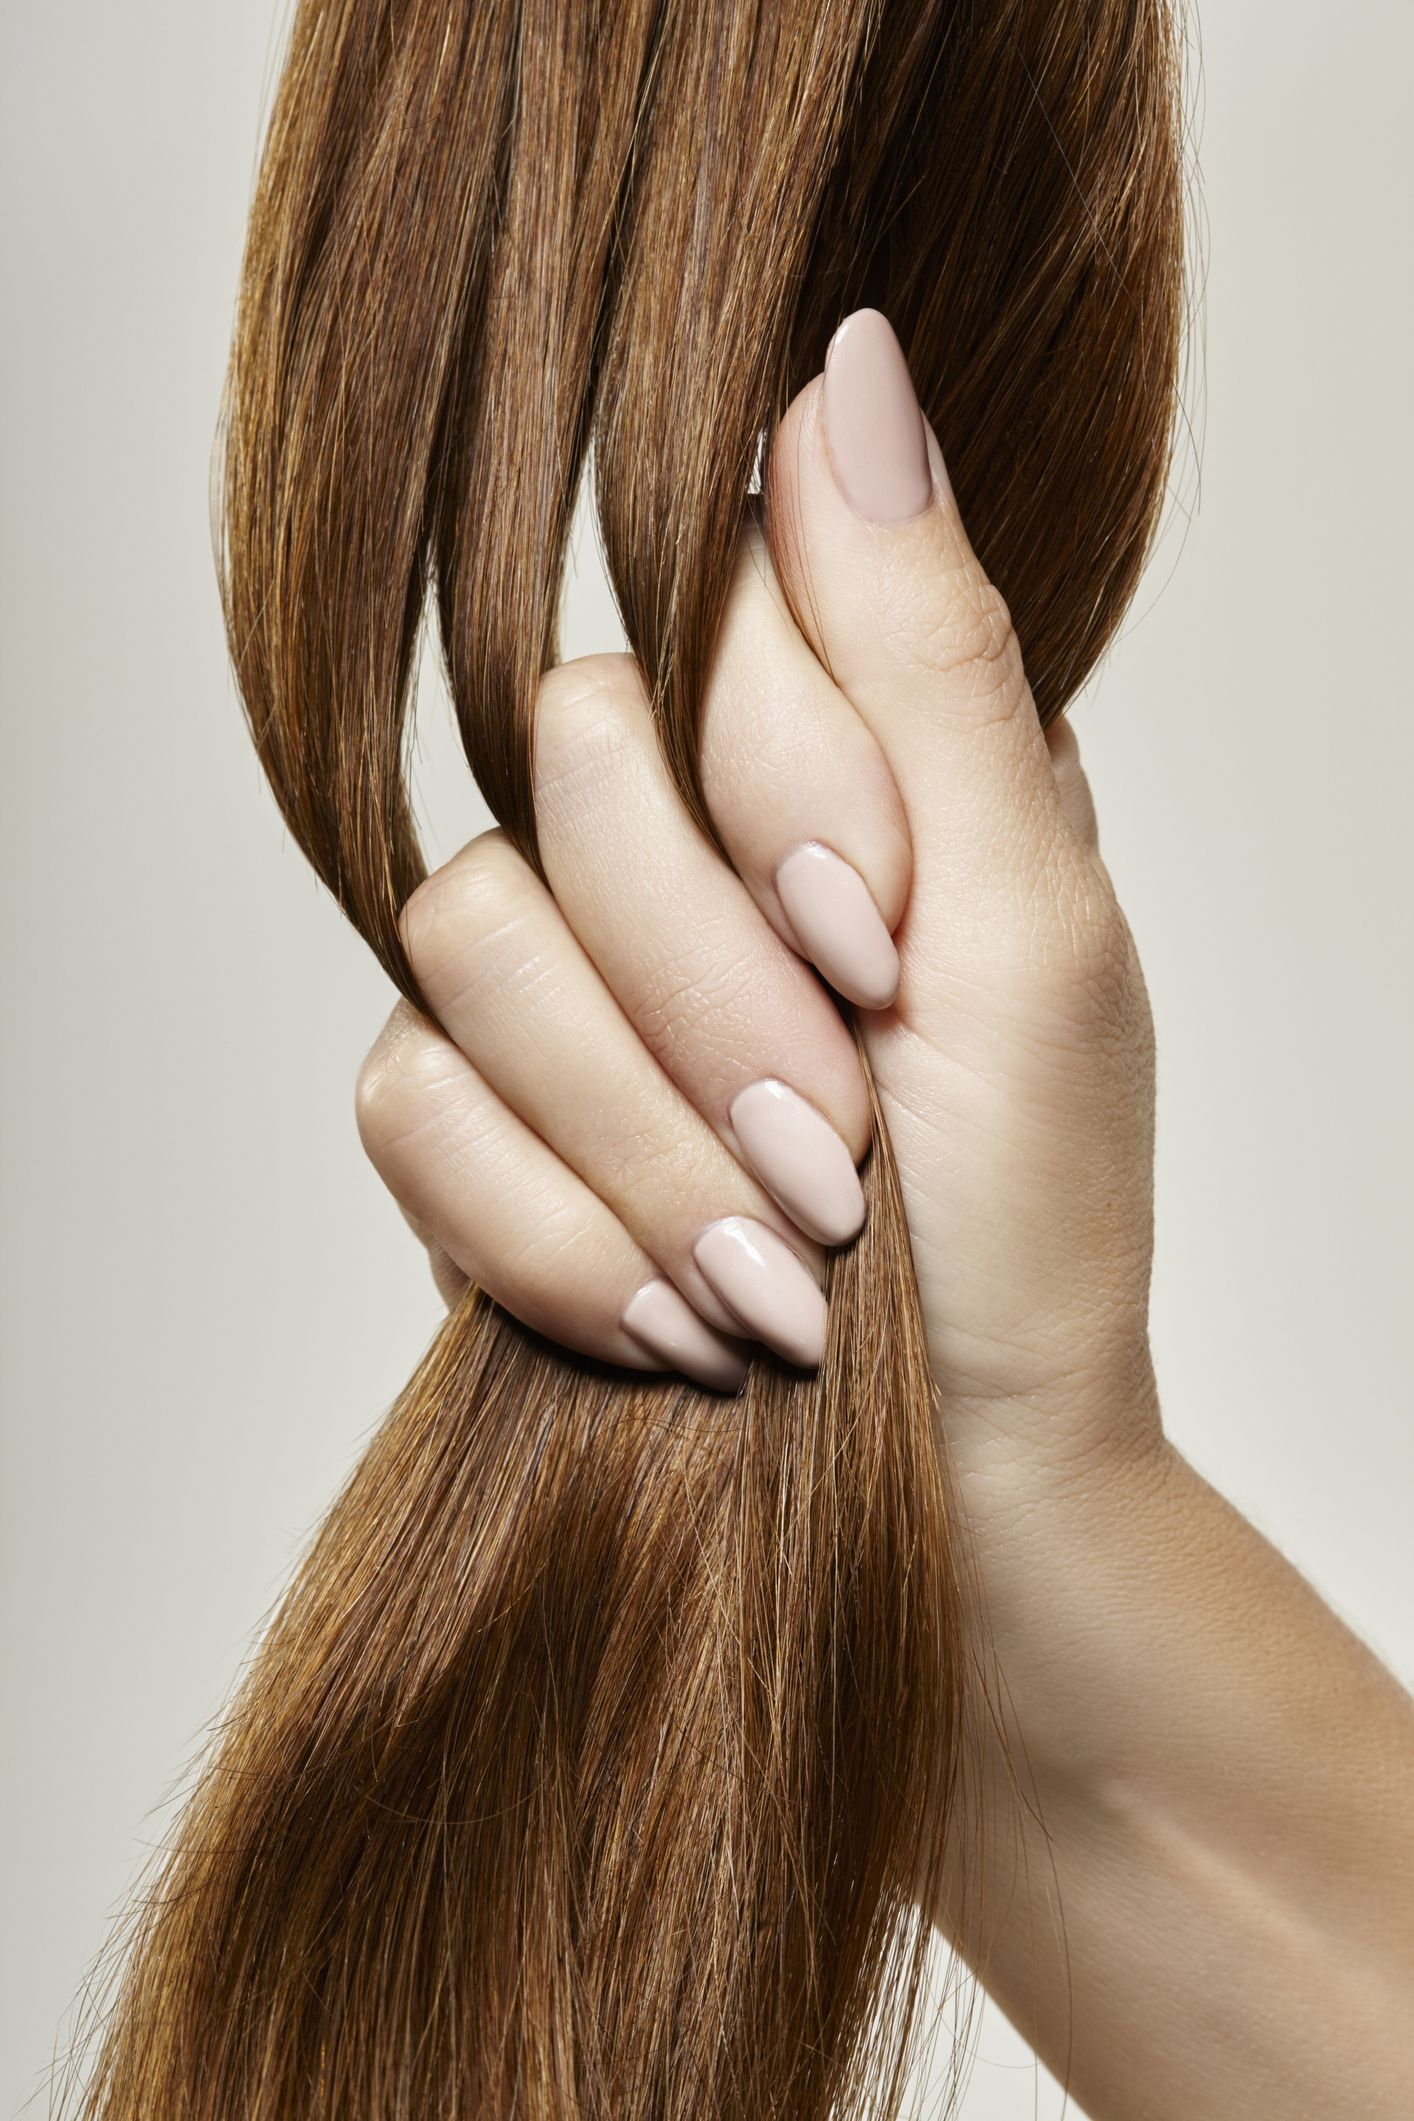 human-female-hand-holding-brown-hair-high-res-stock-photography-652974212-1565810706